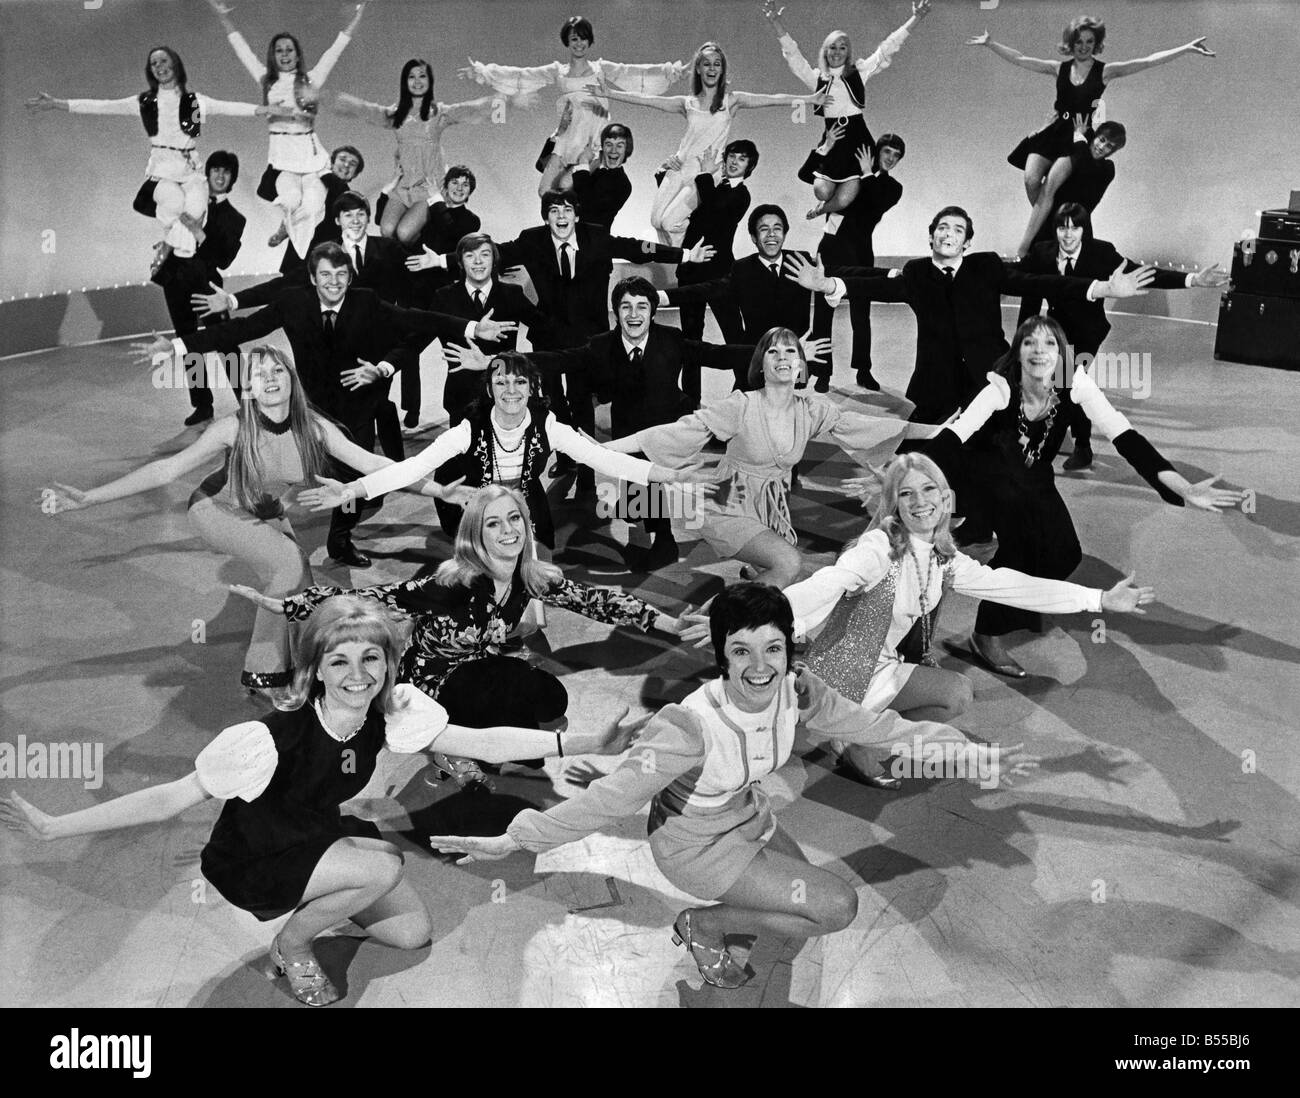 Dancing chorus and stage: 1, Lynda Herbert (aged 19), West Byfleet; 2, Jane Herbert (19), West Byfleet; 3, Wei-Wei - Stock Image